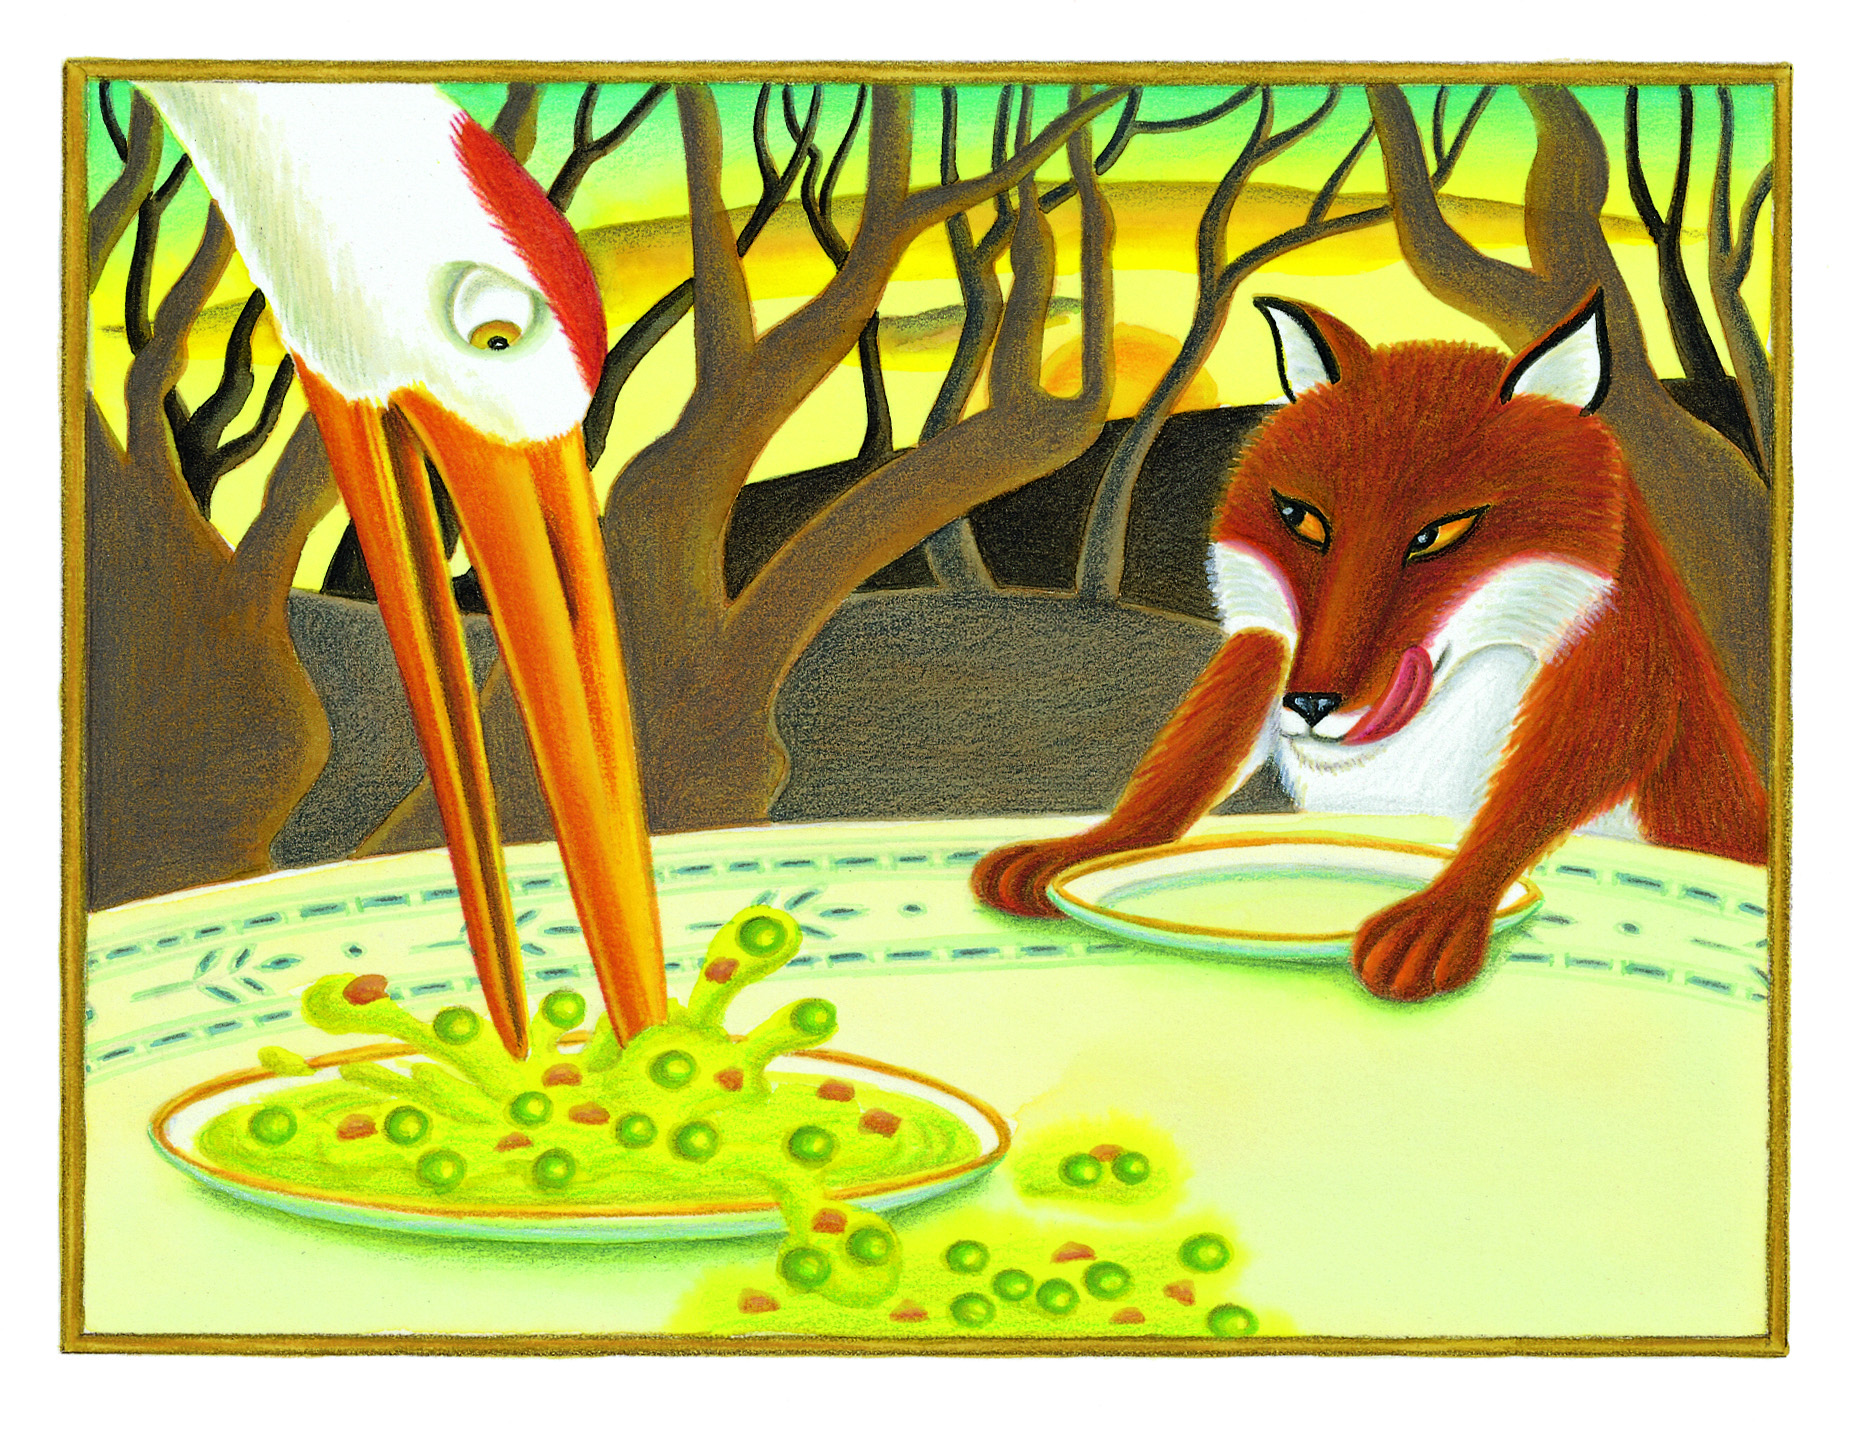 The Lion Classic Aesops Fables Gallery. Illustration 30 'The Fox and the Crane' (Pixel dimensions available w1772 x h1304)